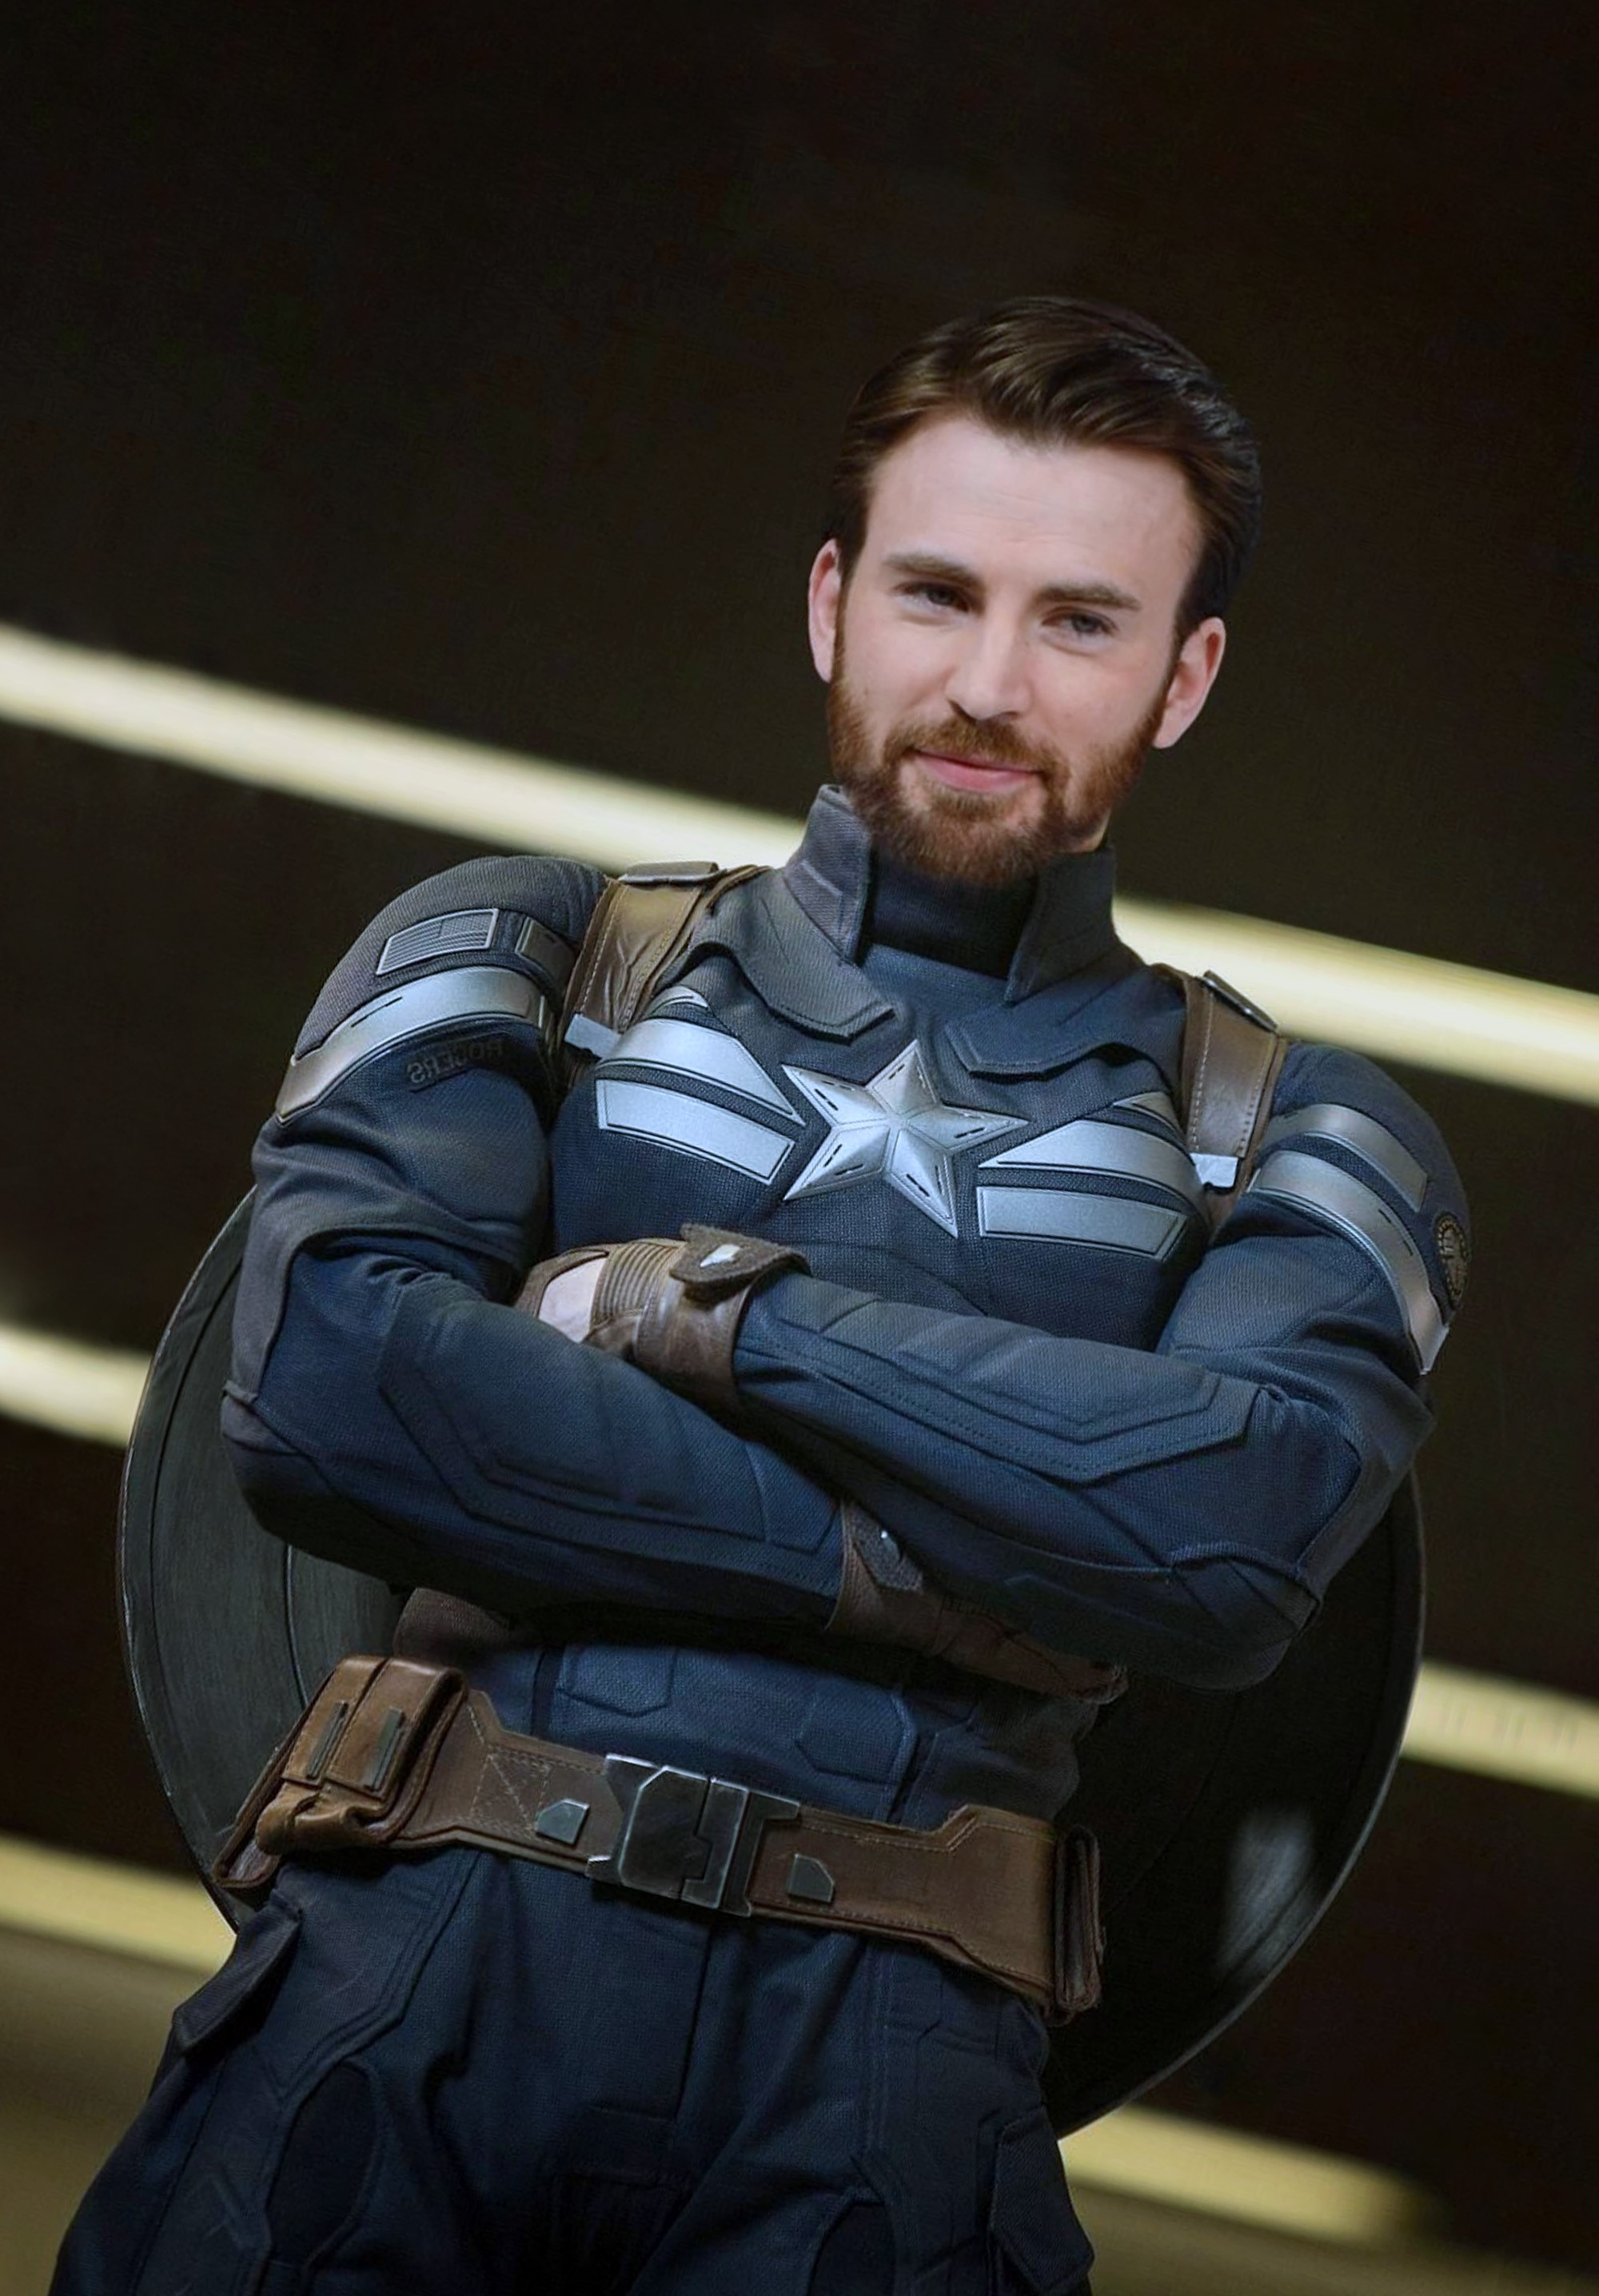 A full beard in the style of Captain America.